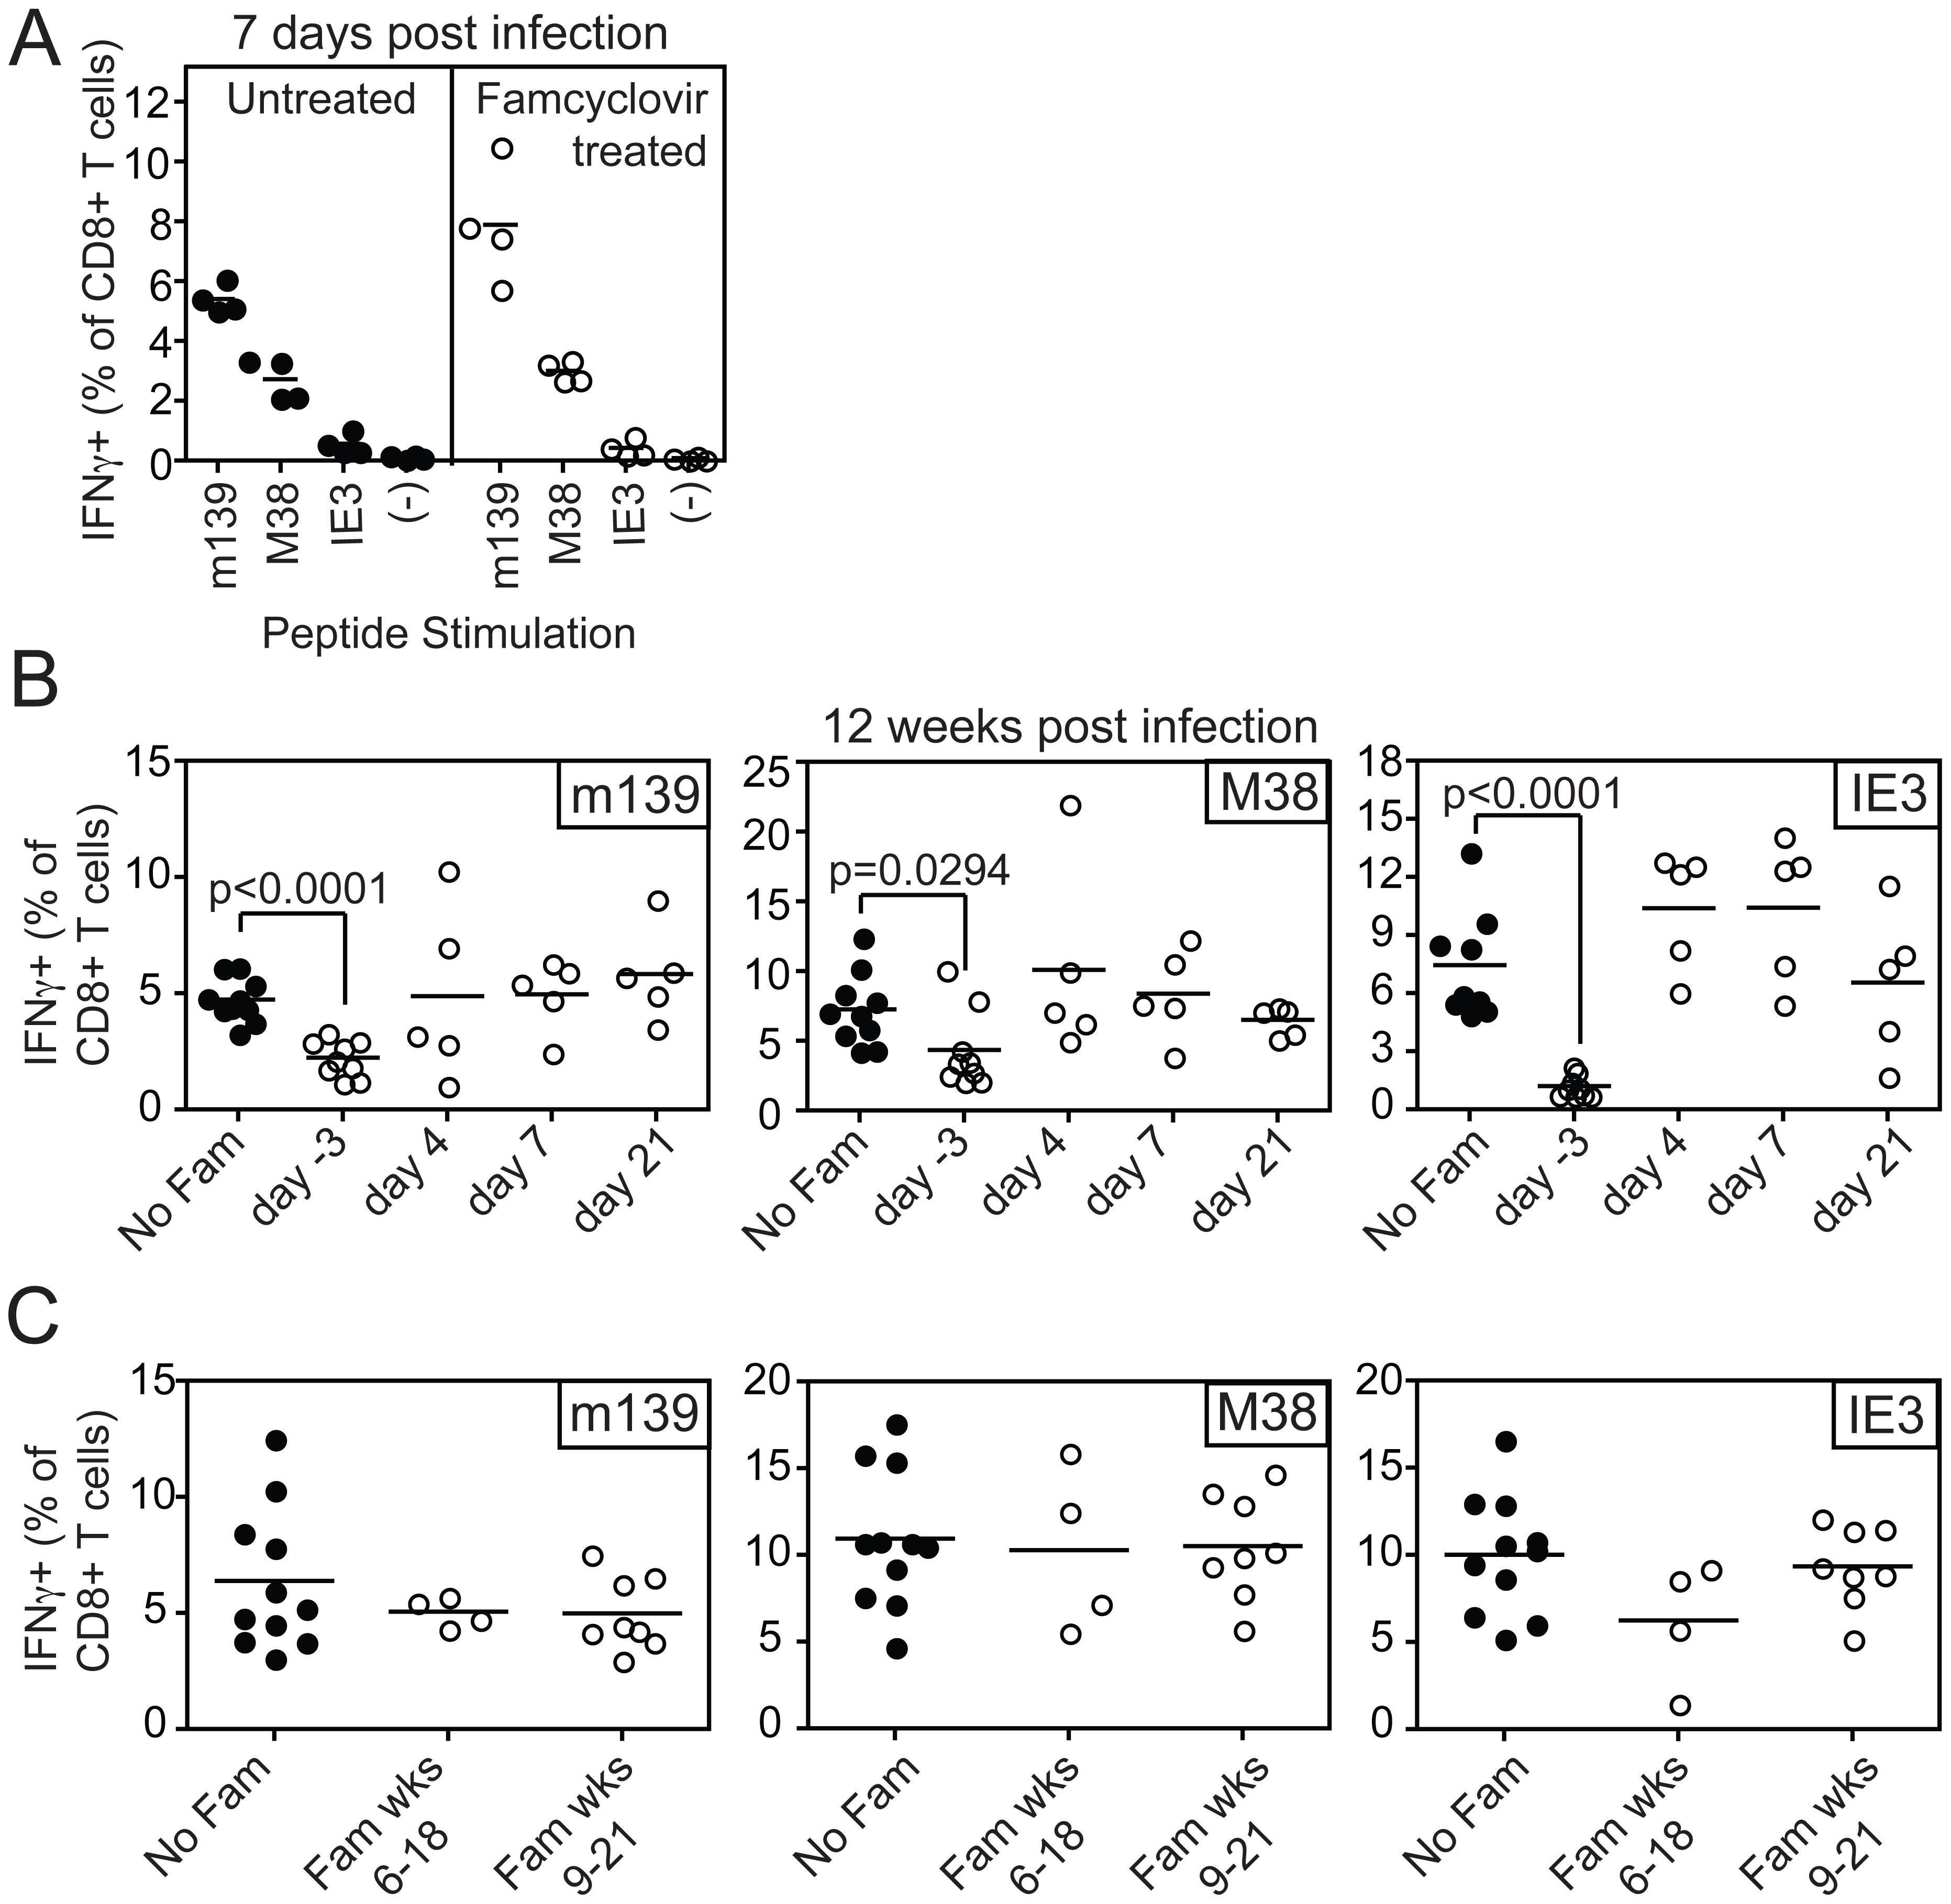 Inhibiting viral replication with famcyclovir does not reduce the size of virus-specific T cell populations.